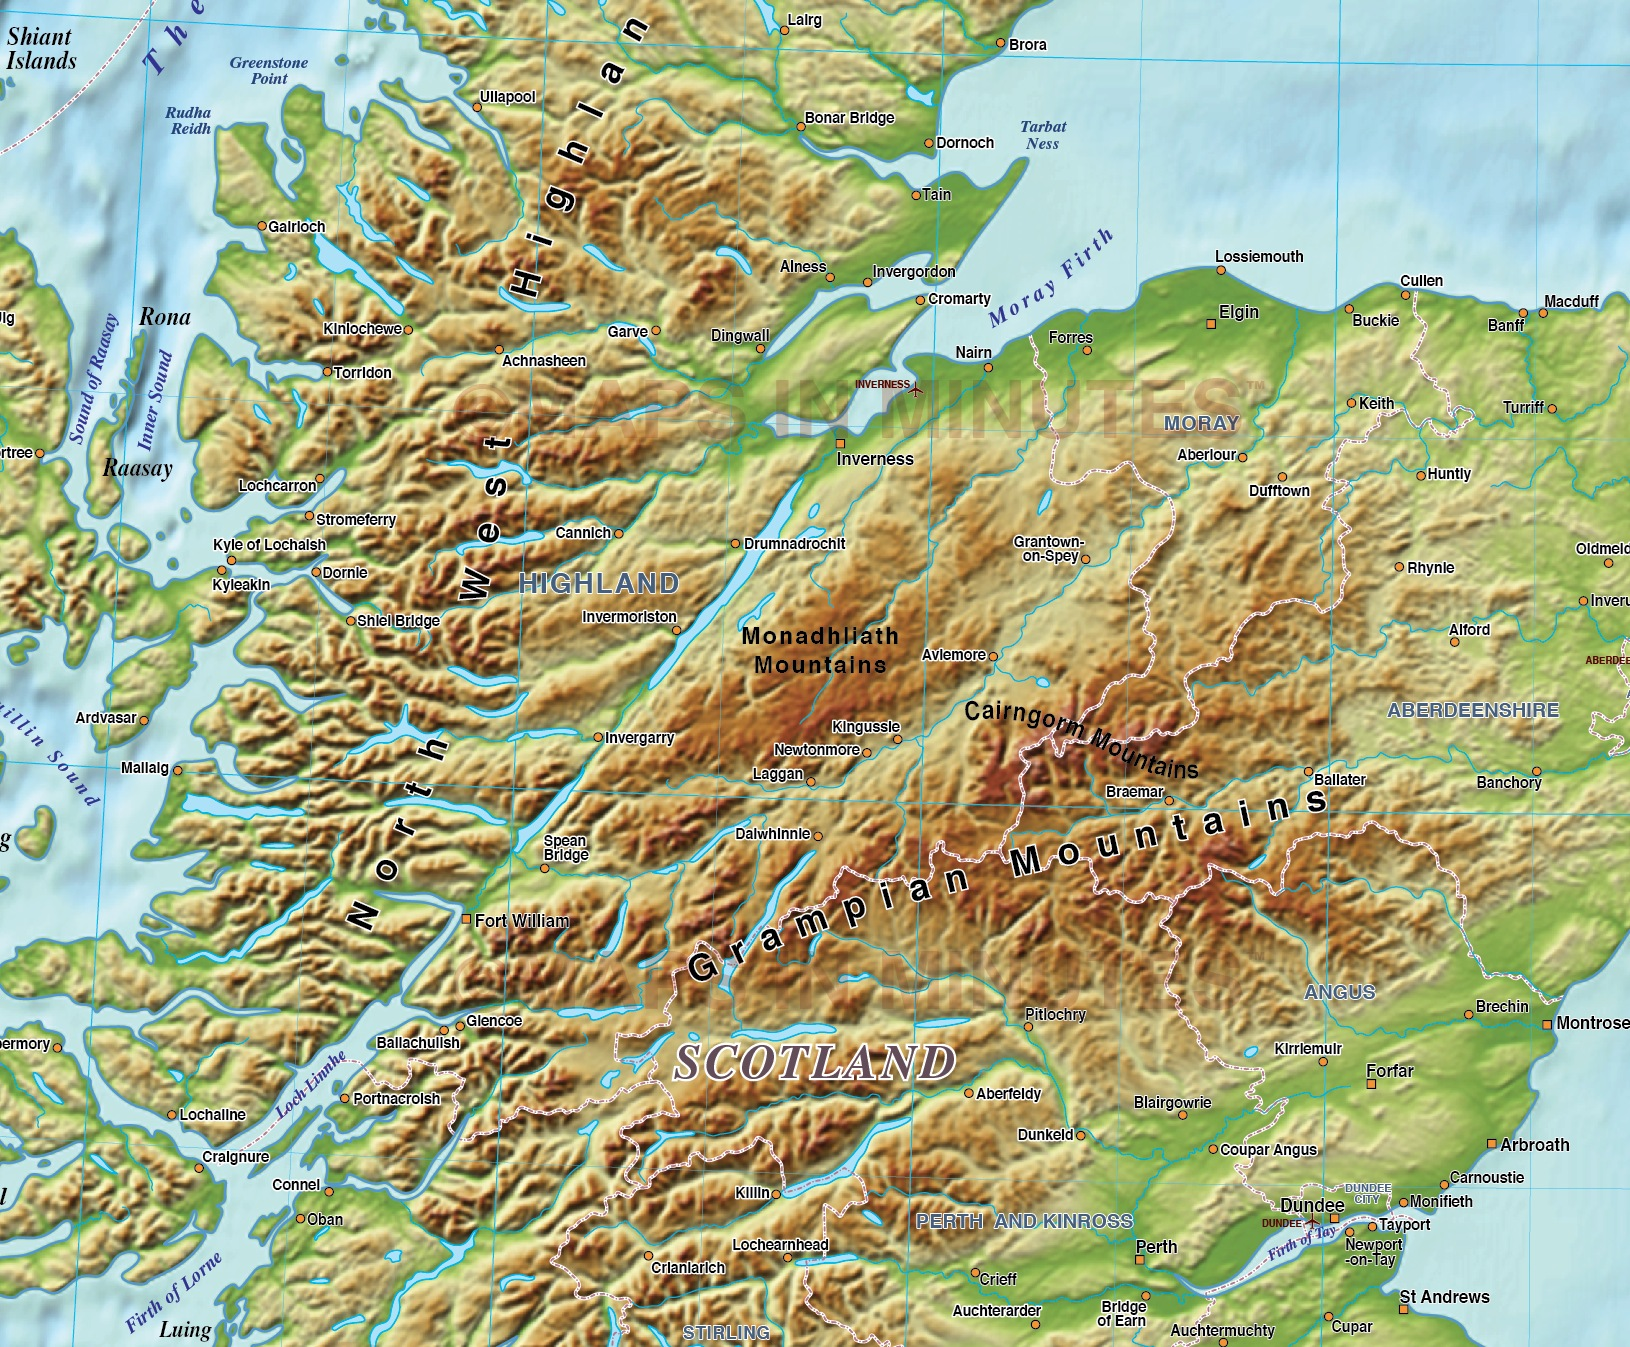 scotland regions map with 600dpi high res strong colour relief  5 000 000 scale in illustrator